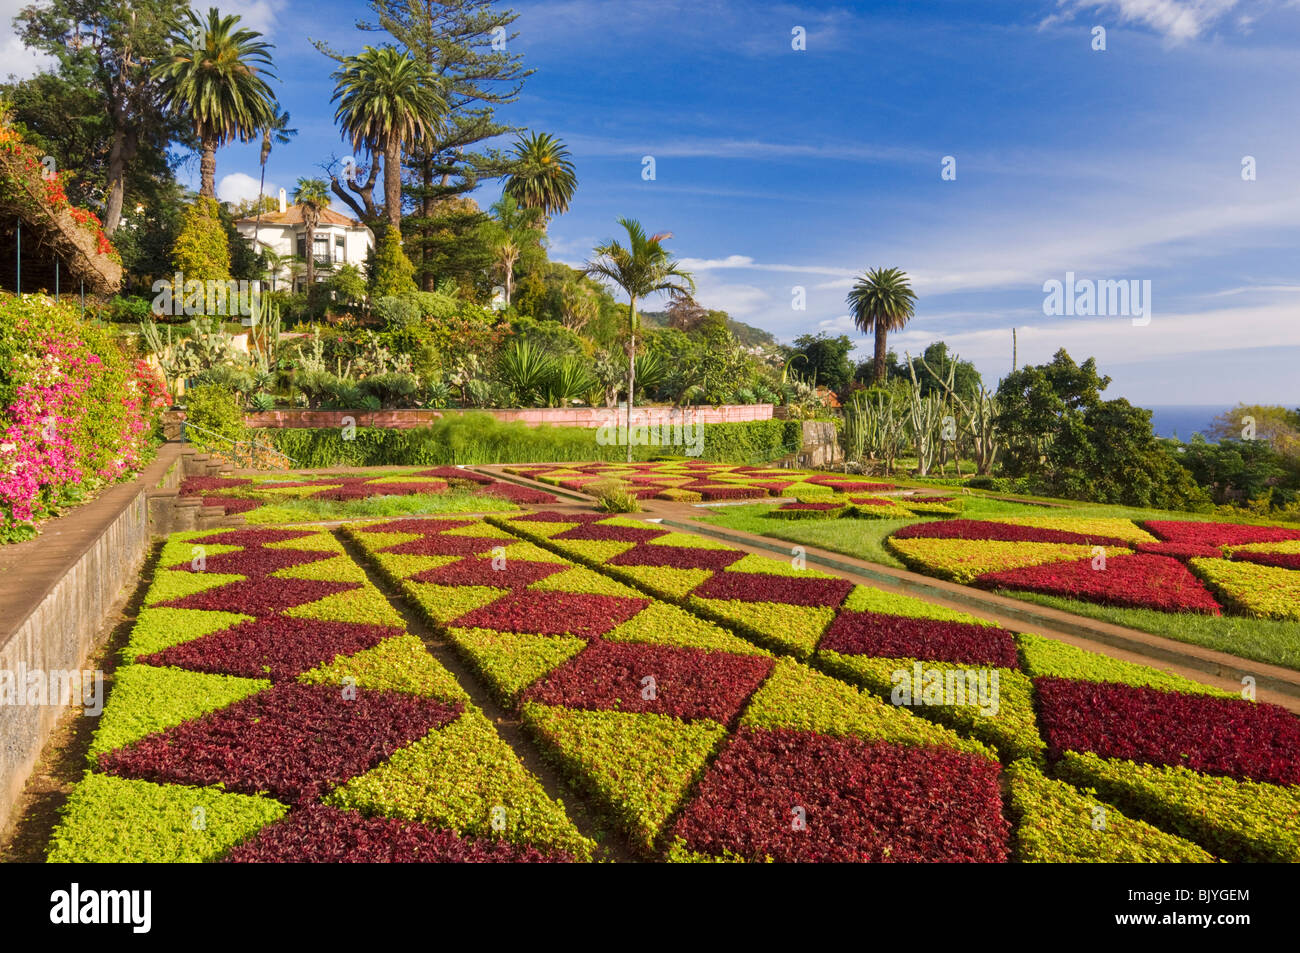 The formal gardens at the Botanical gardens Jardim Botanico Funchal Madeira Portugal EU Europe - Stock Image